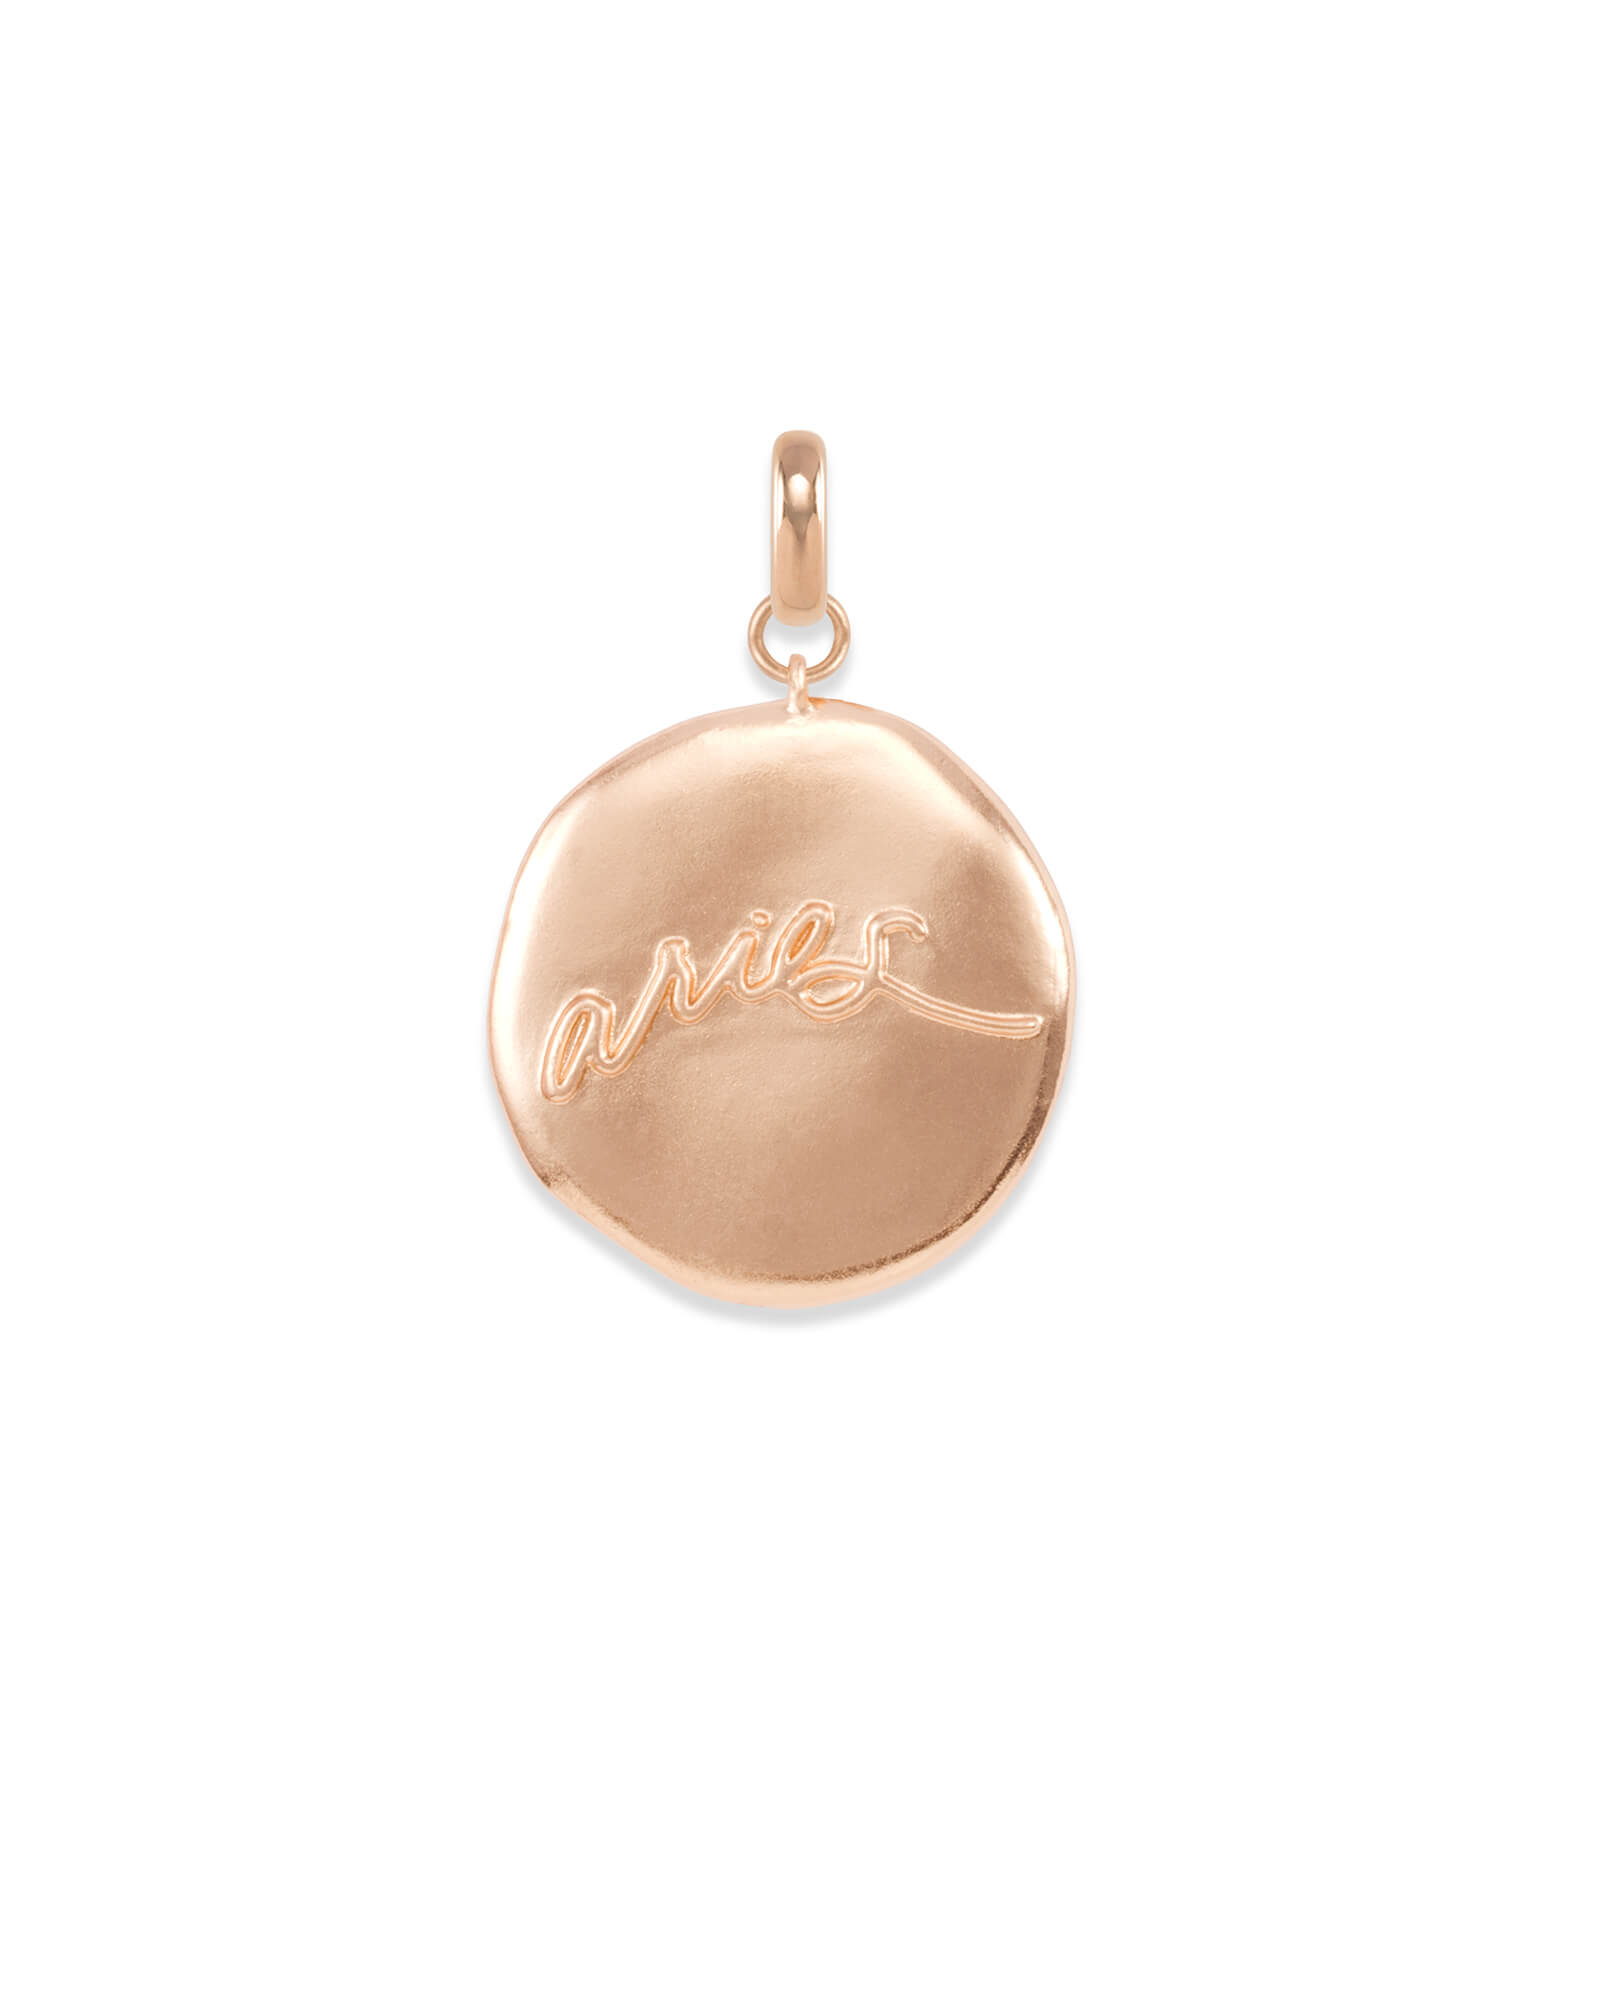 Aries Coin Charm in Rose Gold